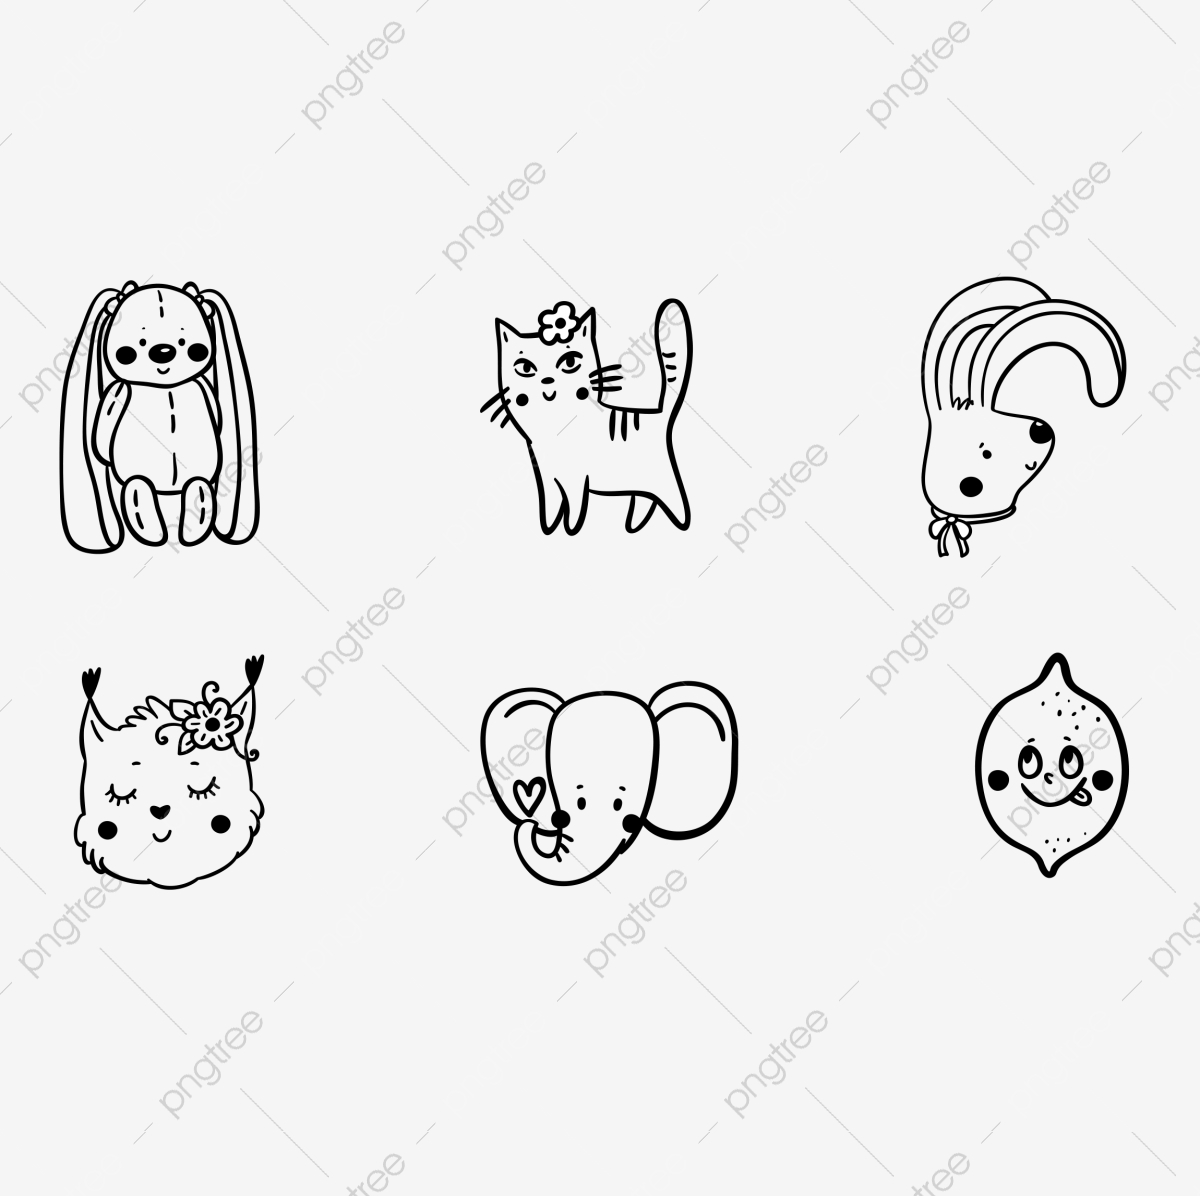 https fr pngtree com freepng small animal line drawing cute ai animal lovely 3943849 html